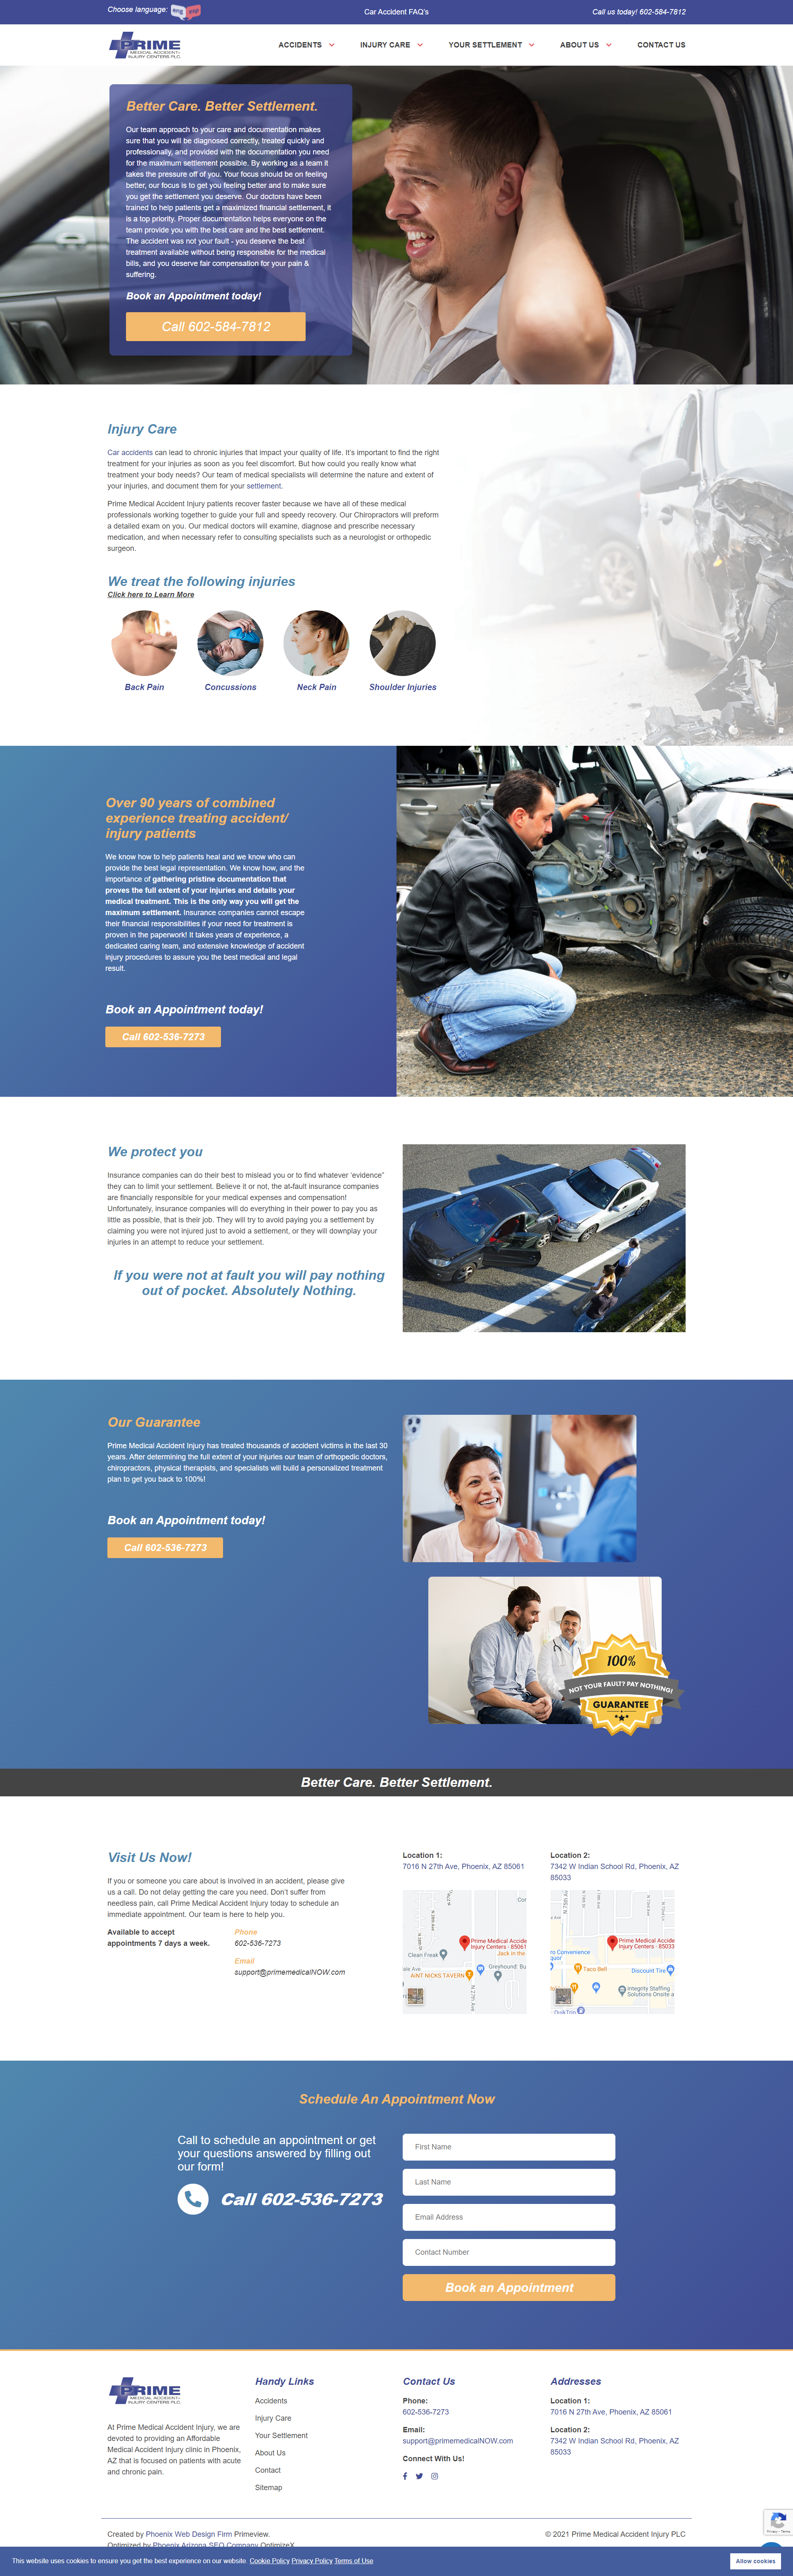 PrimeView Launches New Prime Medical Accident Injury Website